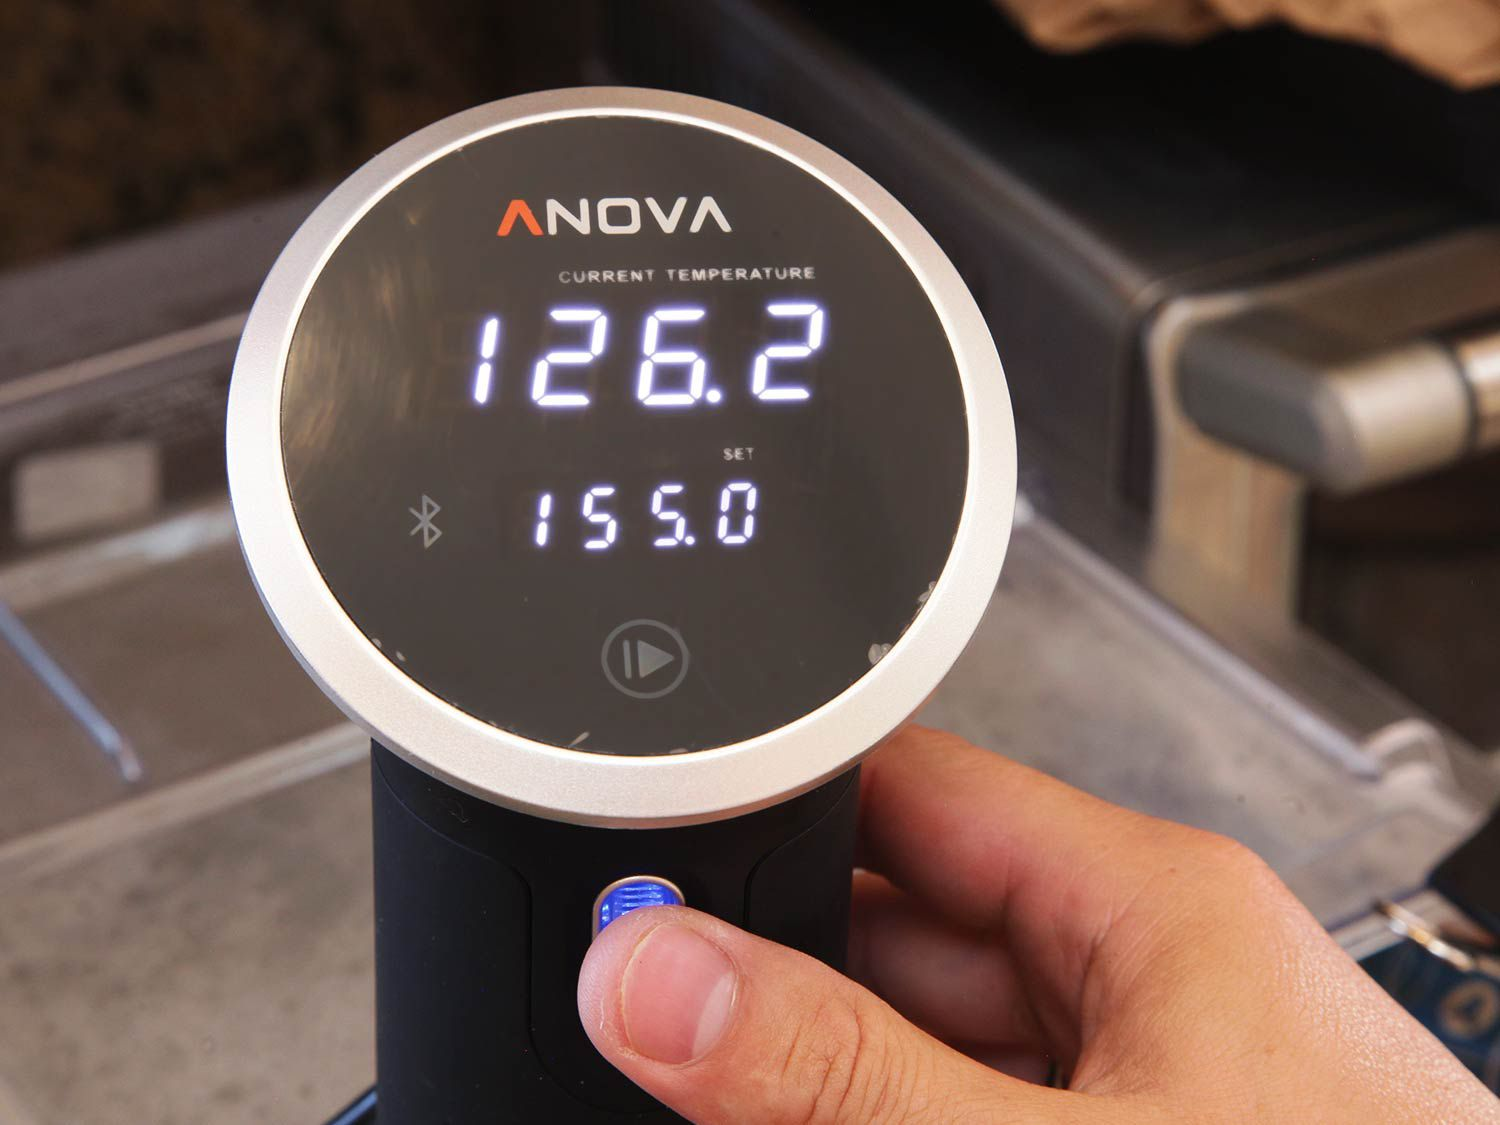 An immersion circulator set to 155°F